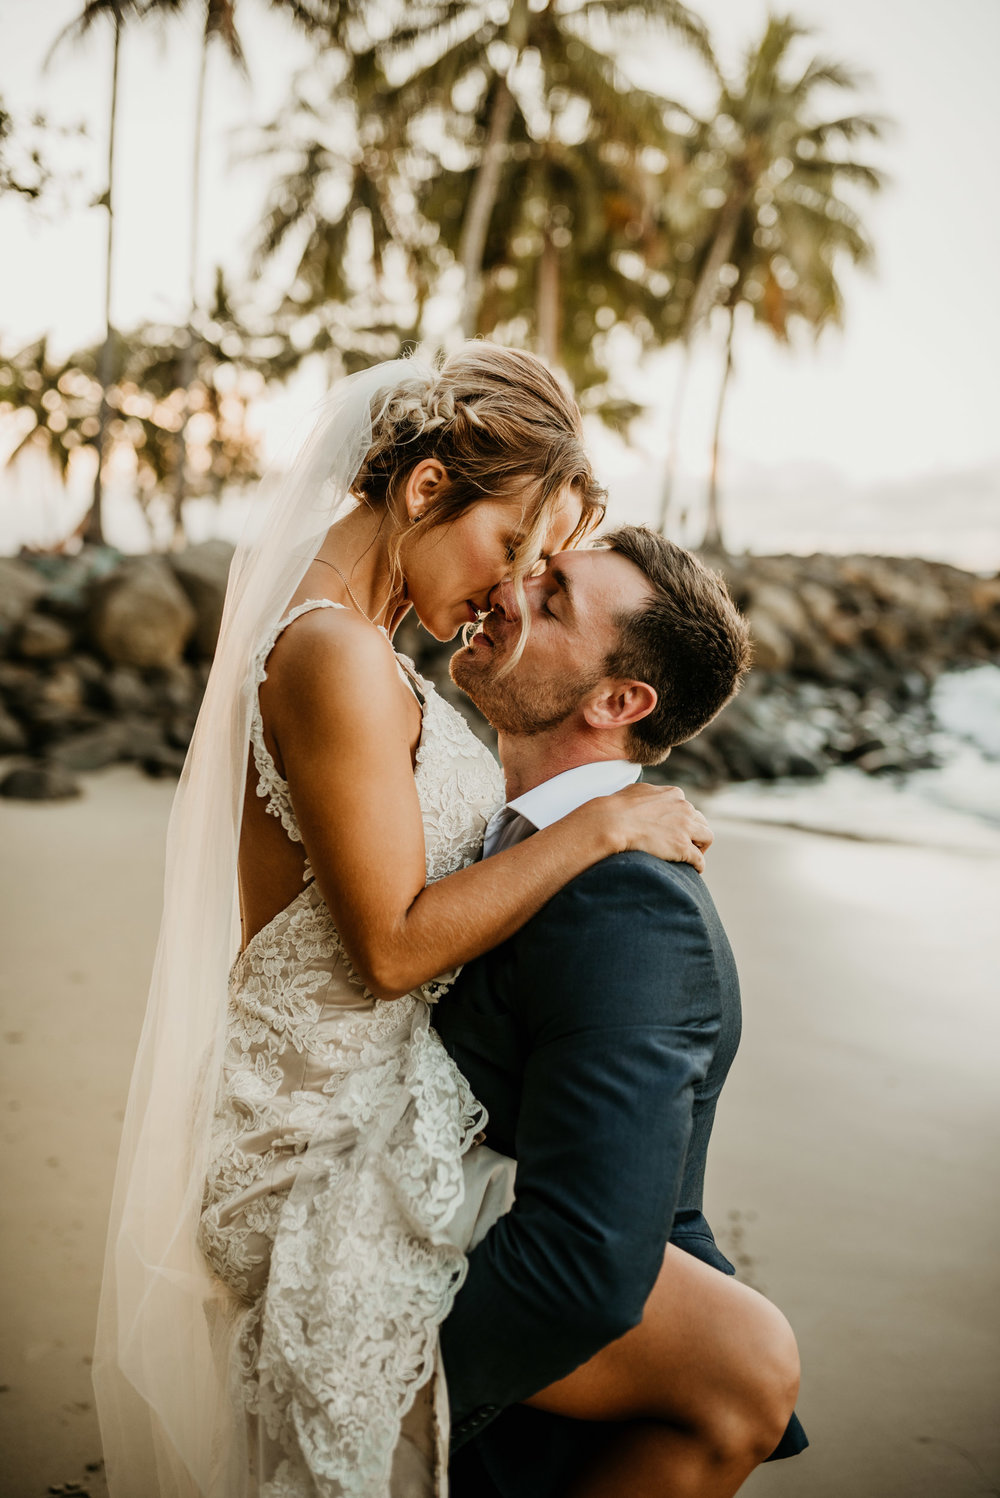 The Raw Photographer - Cairns and Port Douglas Wedding Photographer - Best of 2018-26.jpg